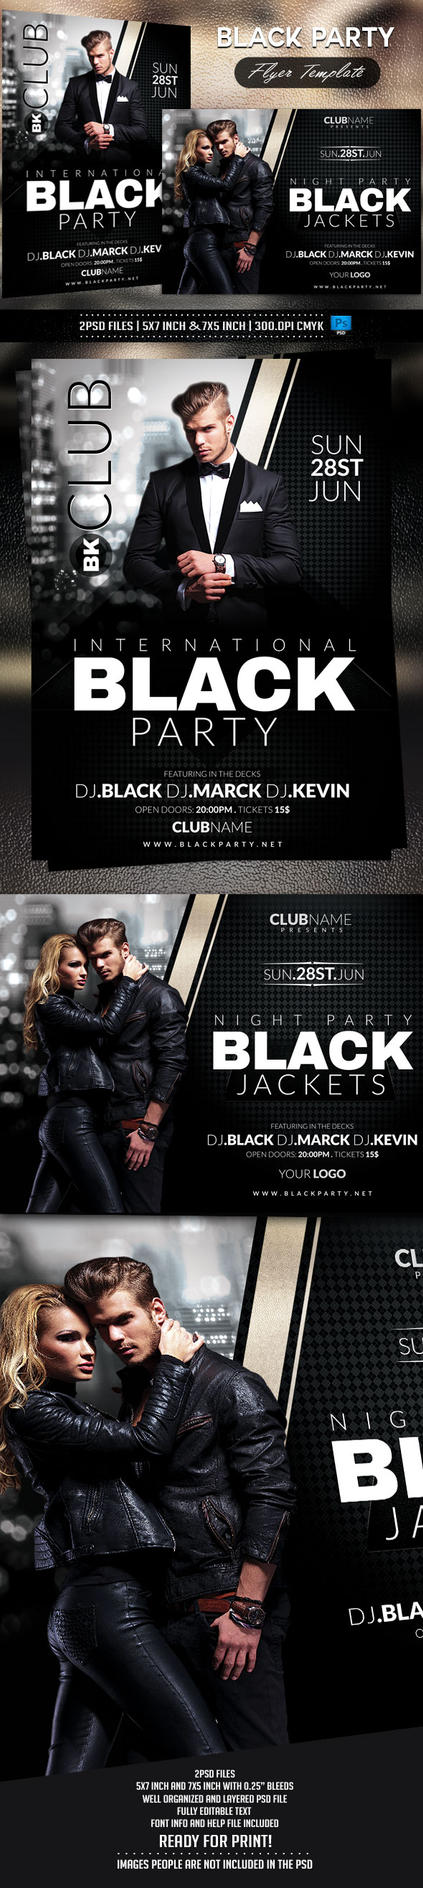 Black Party Flyer template by BriellDesign